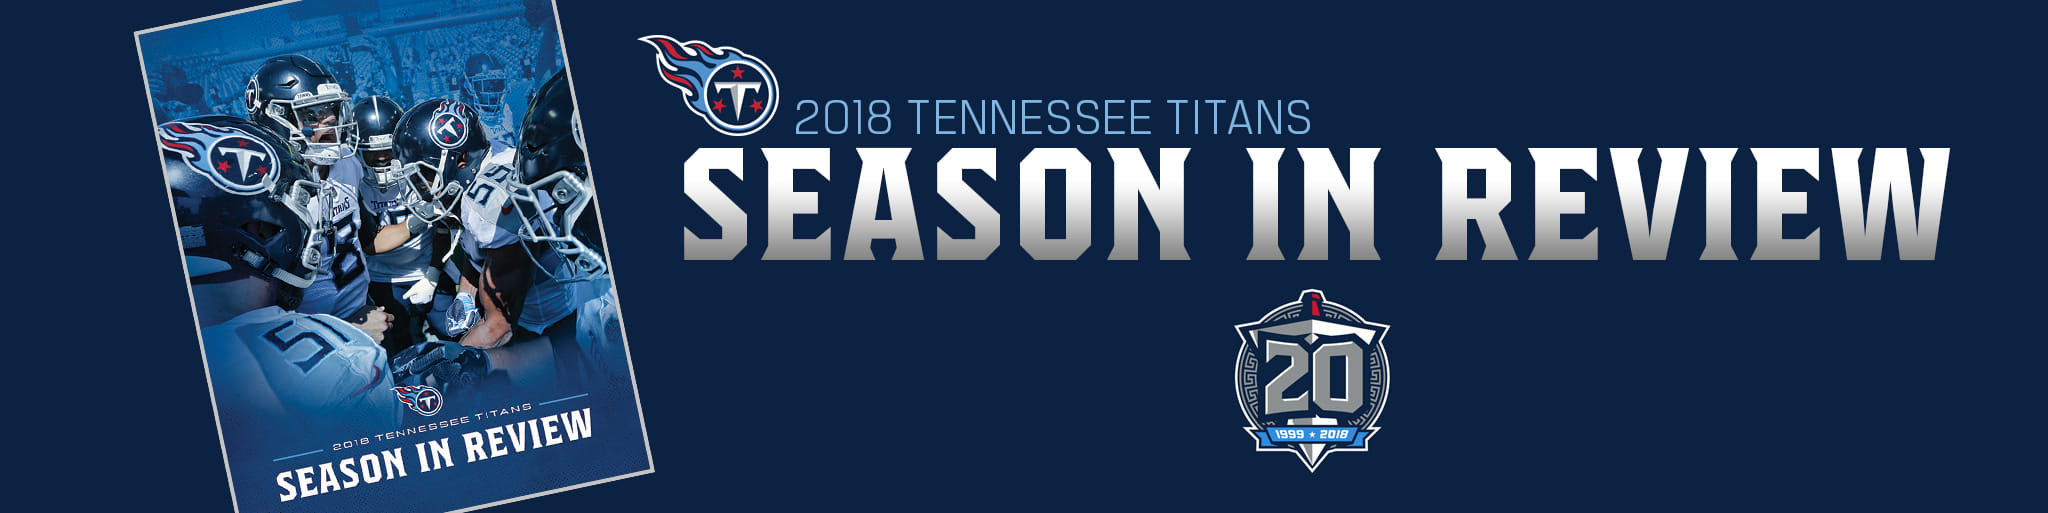 Tennessee Titans 2018 Season in Review